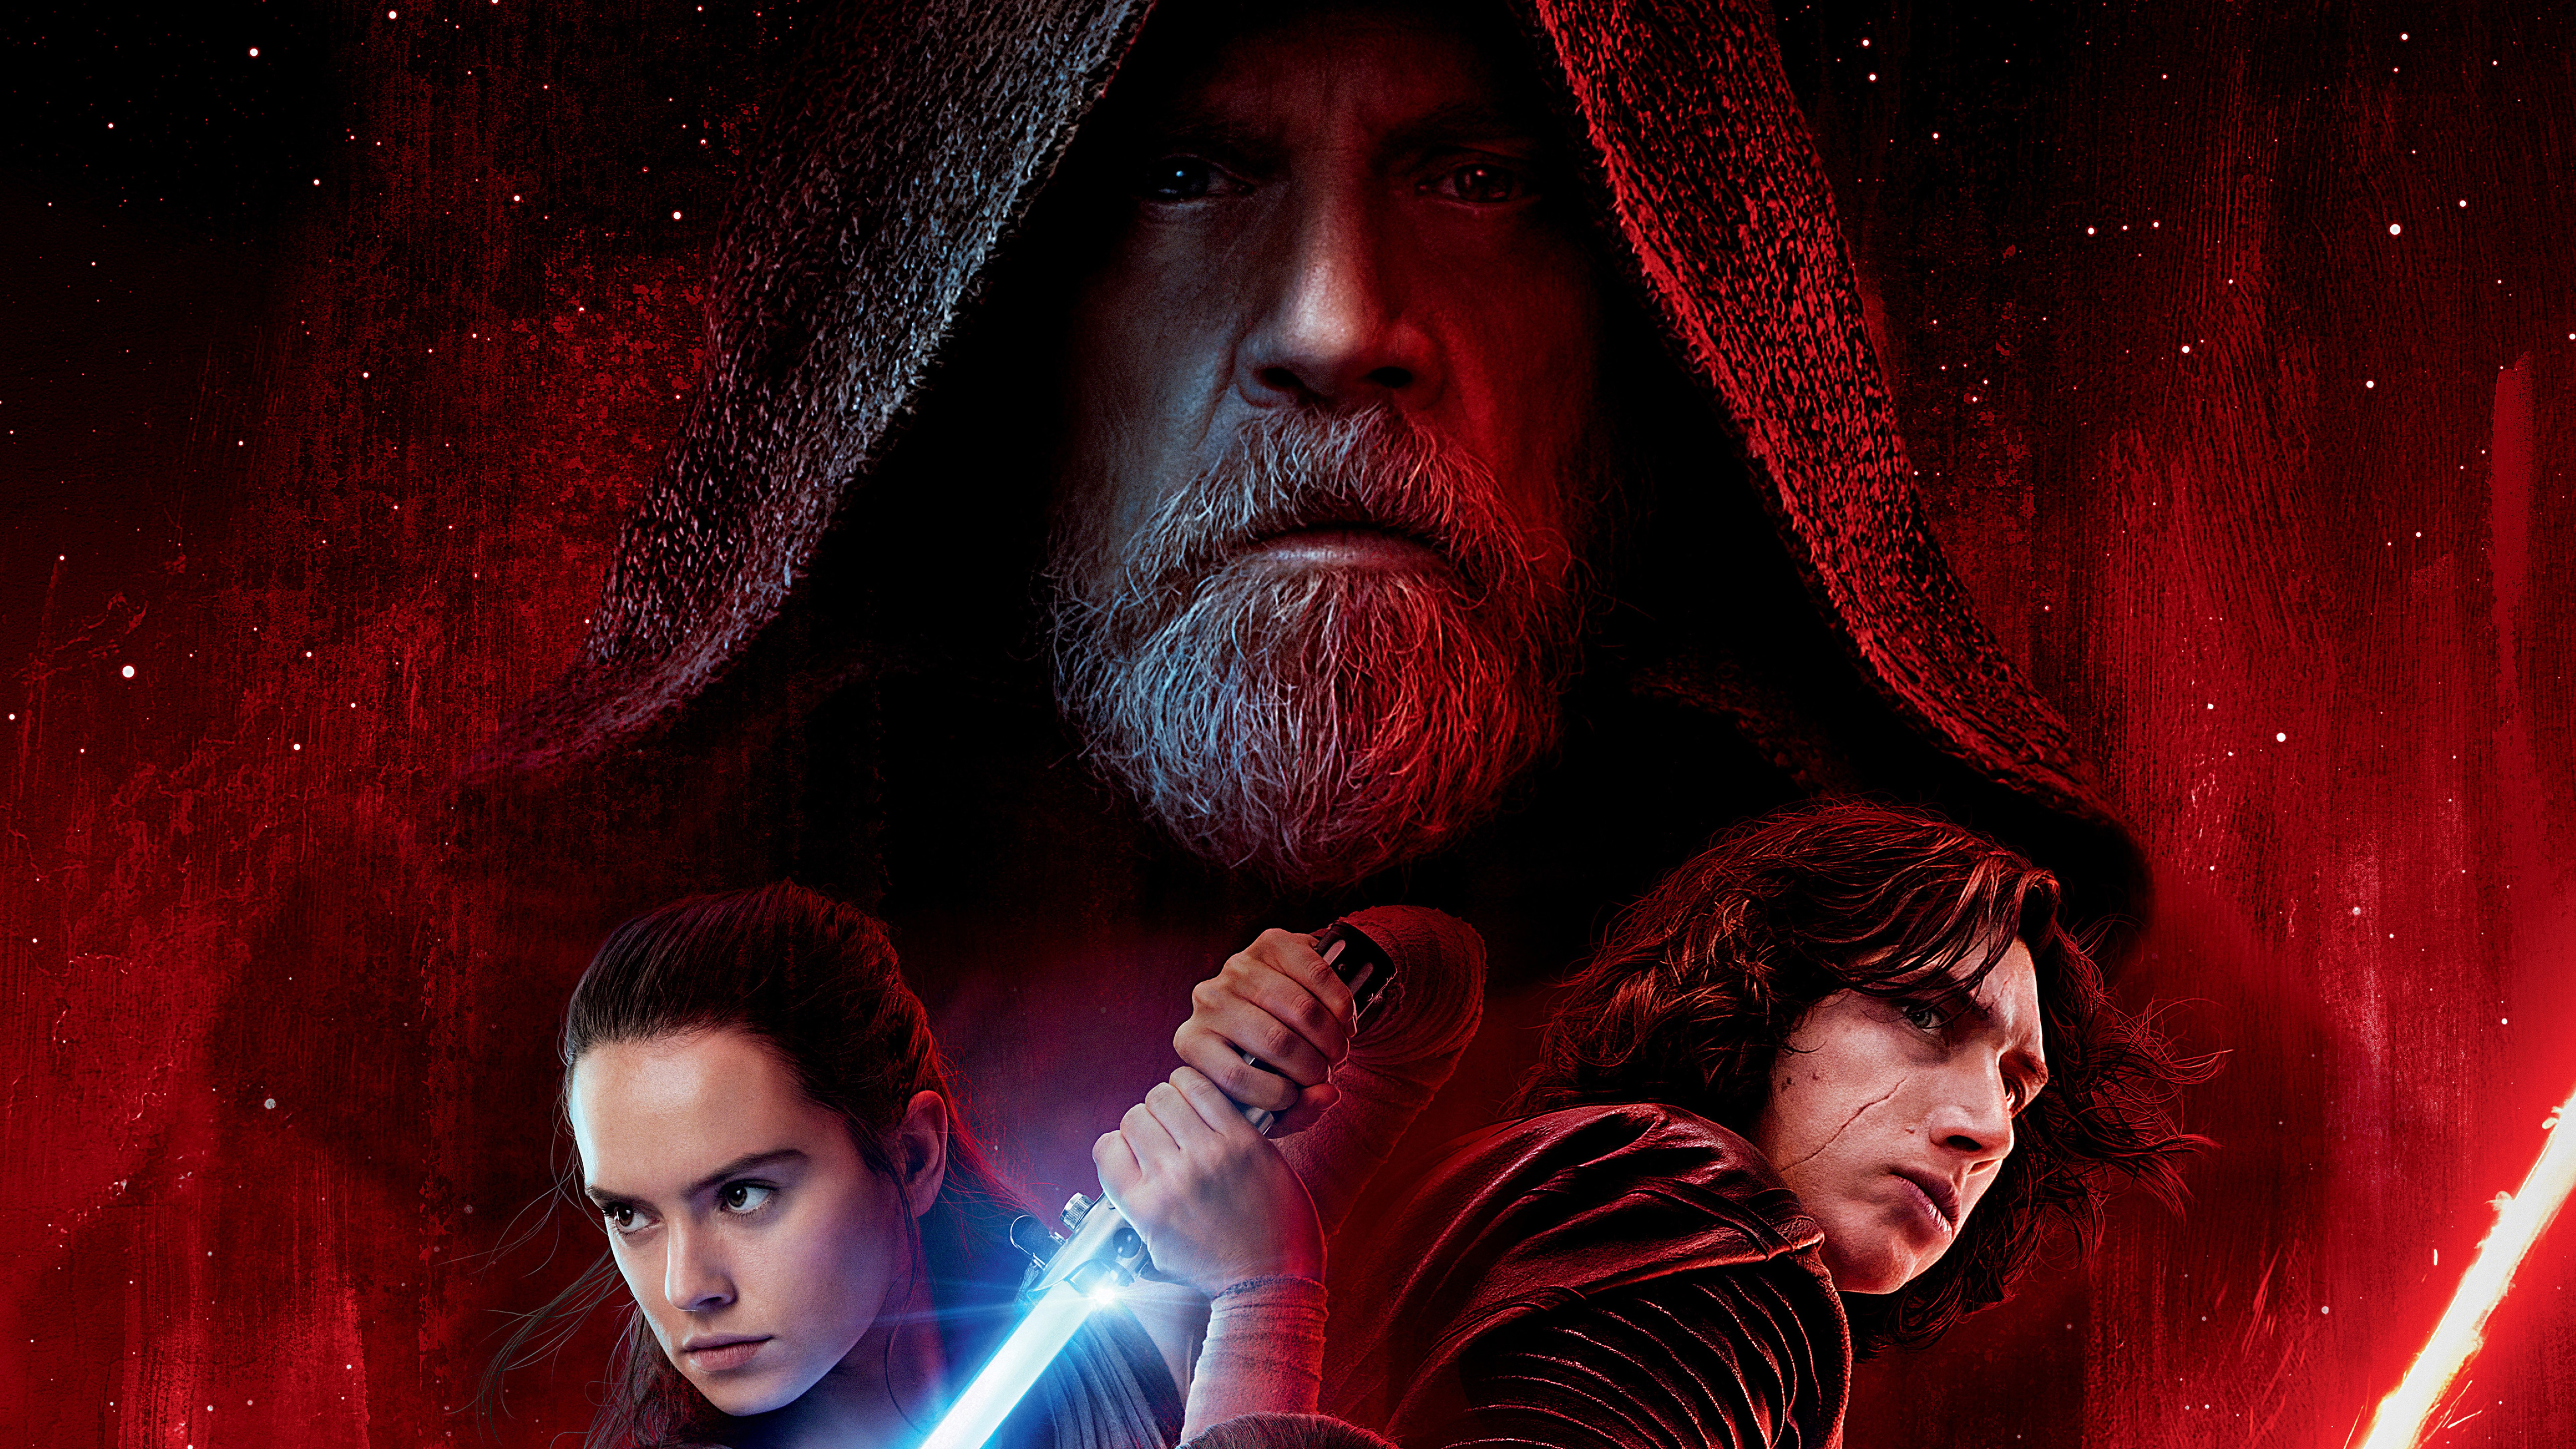 Star Wars The Last Jedi Backgrounds Pictures Images